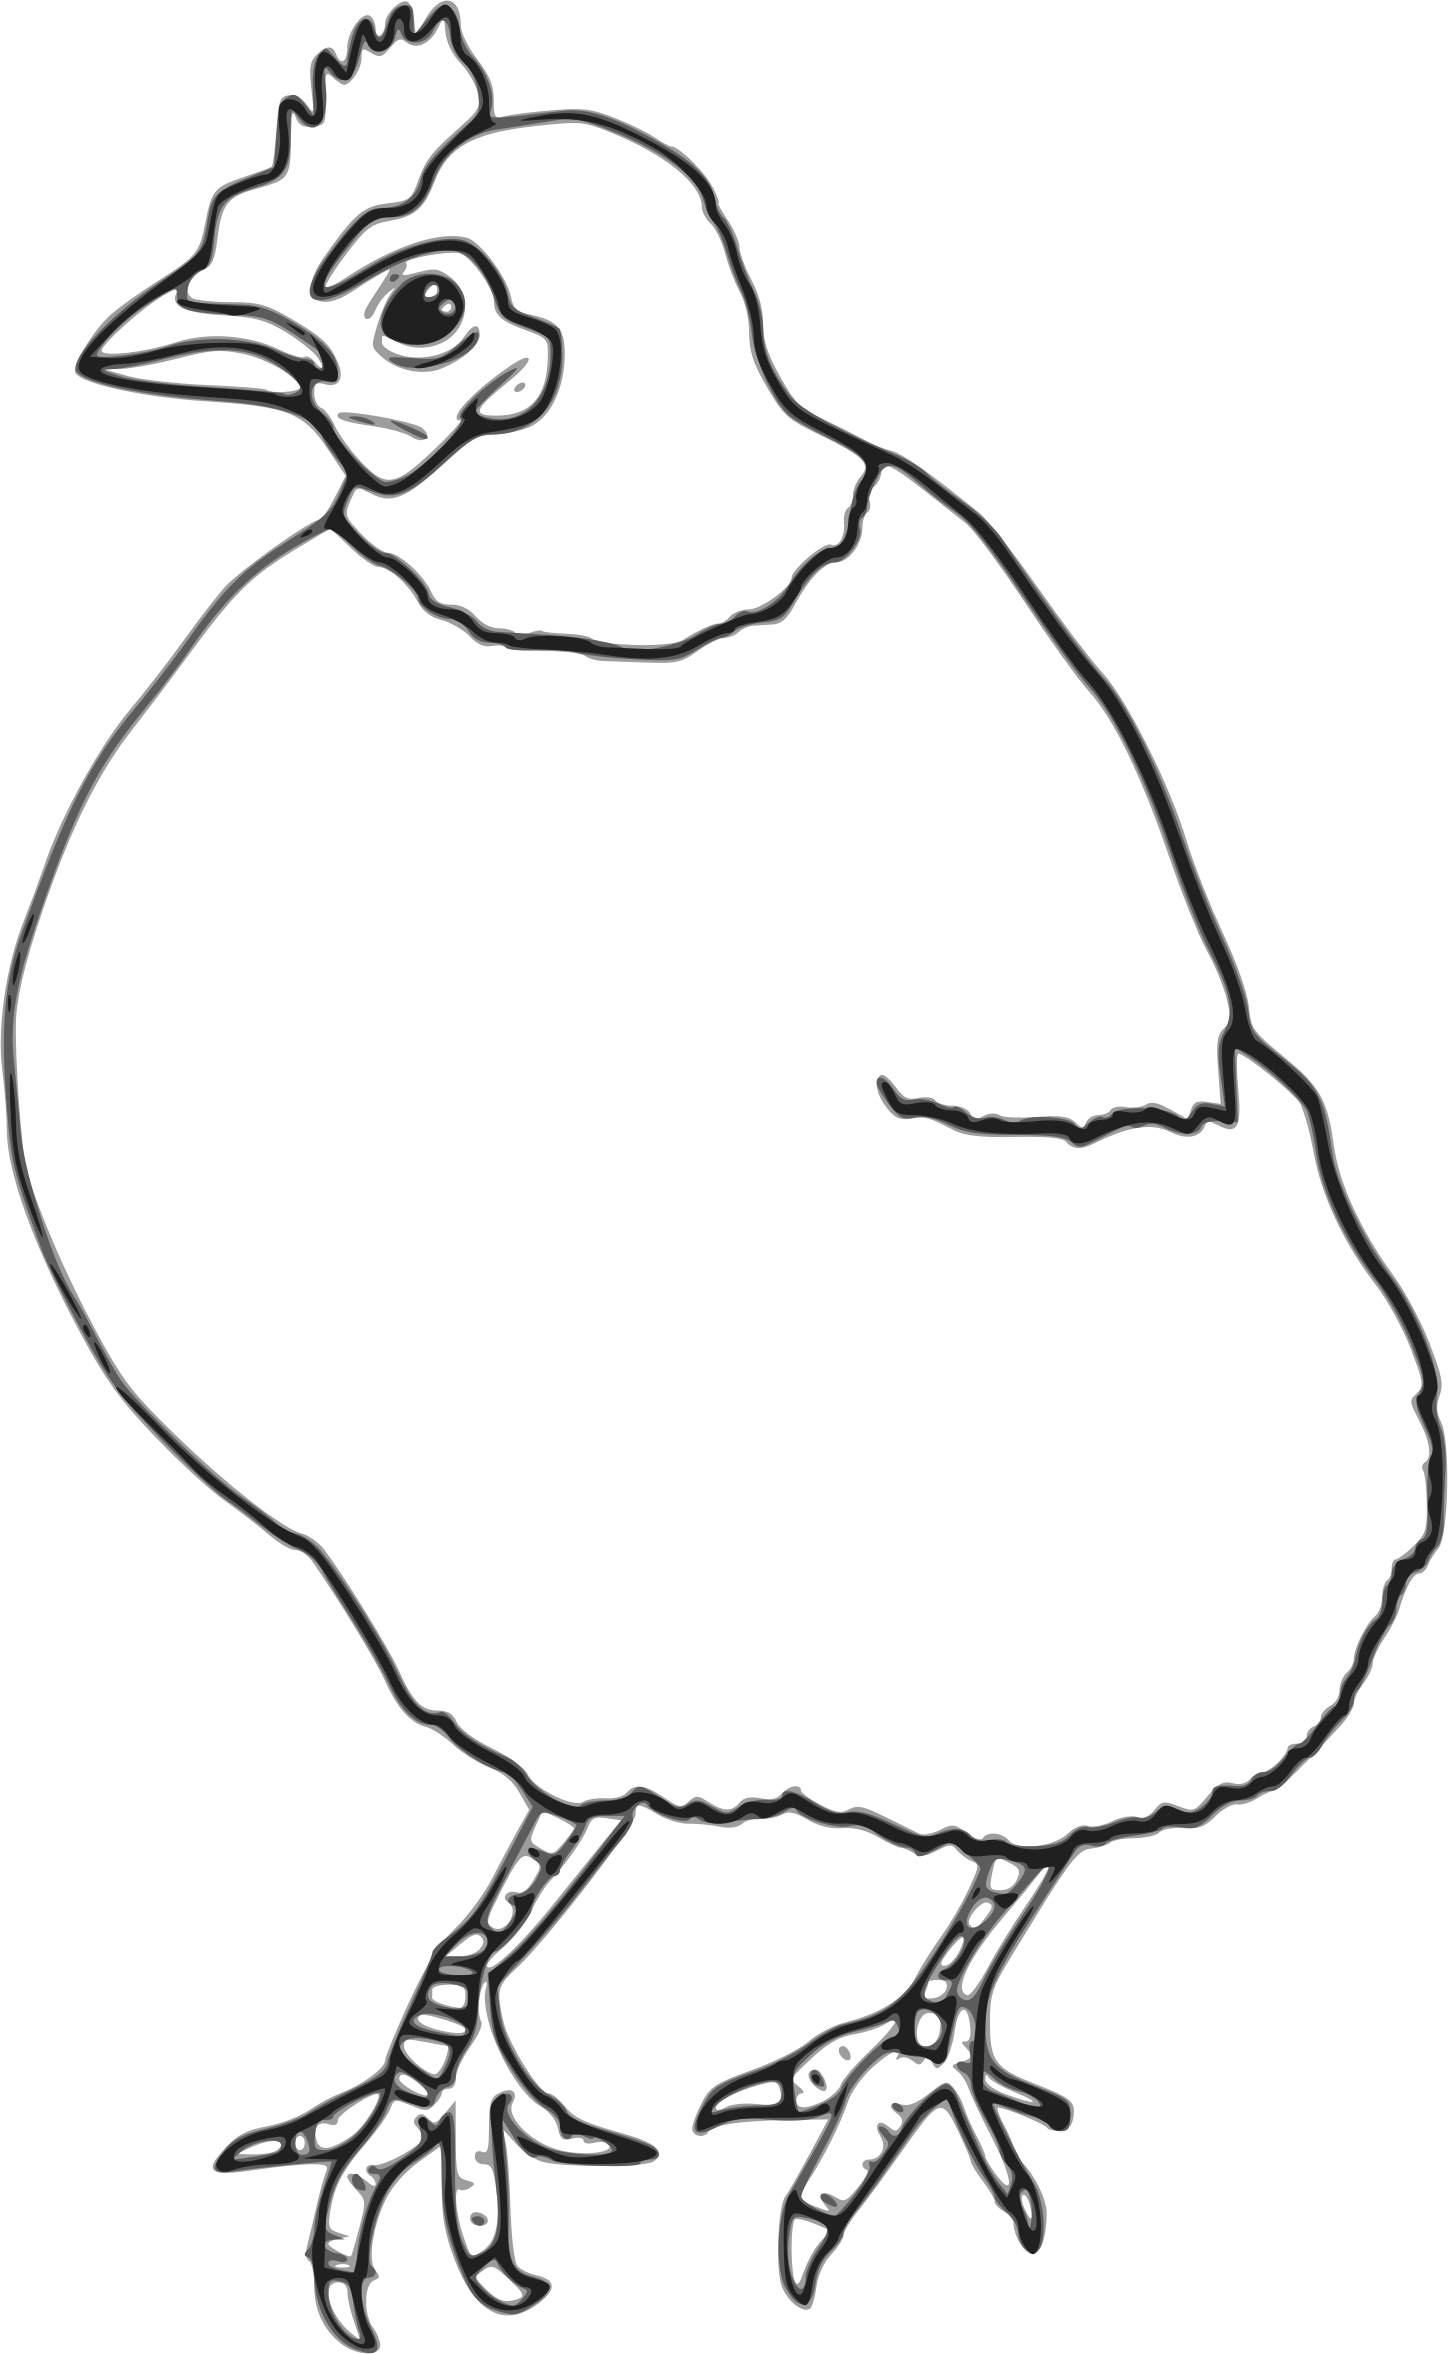 image free library Hen black and white clipart. Outline big image png.